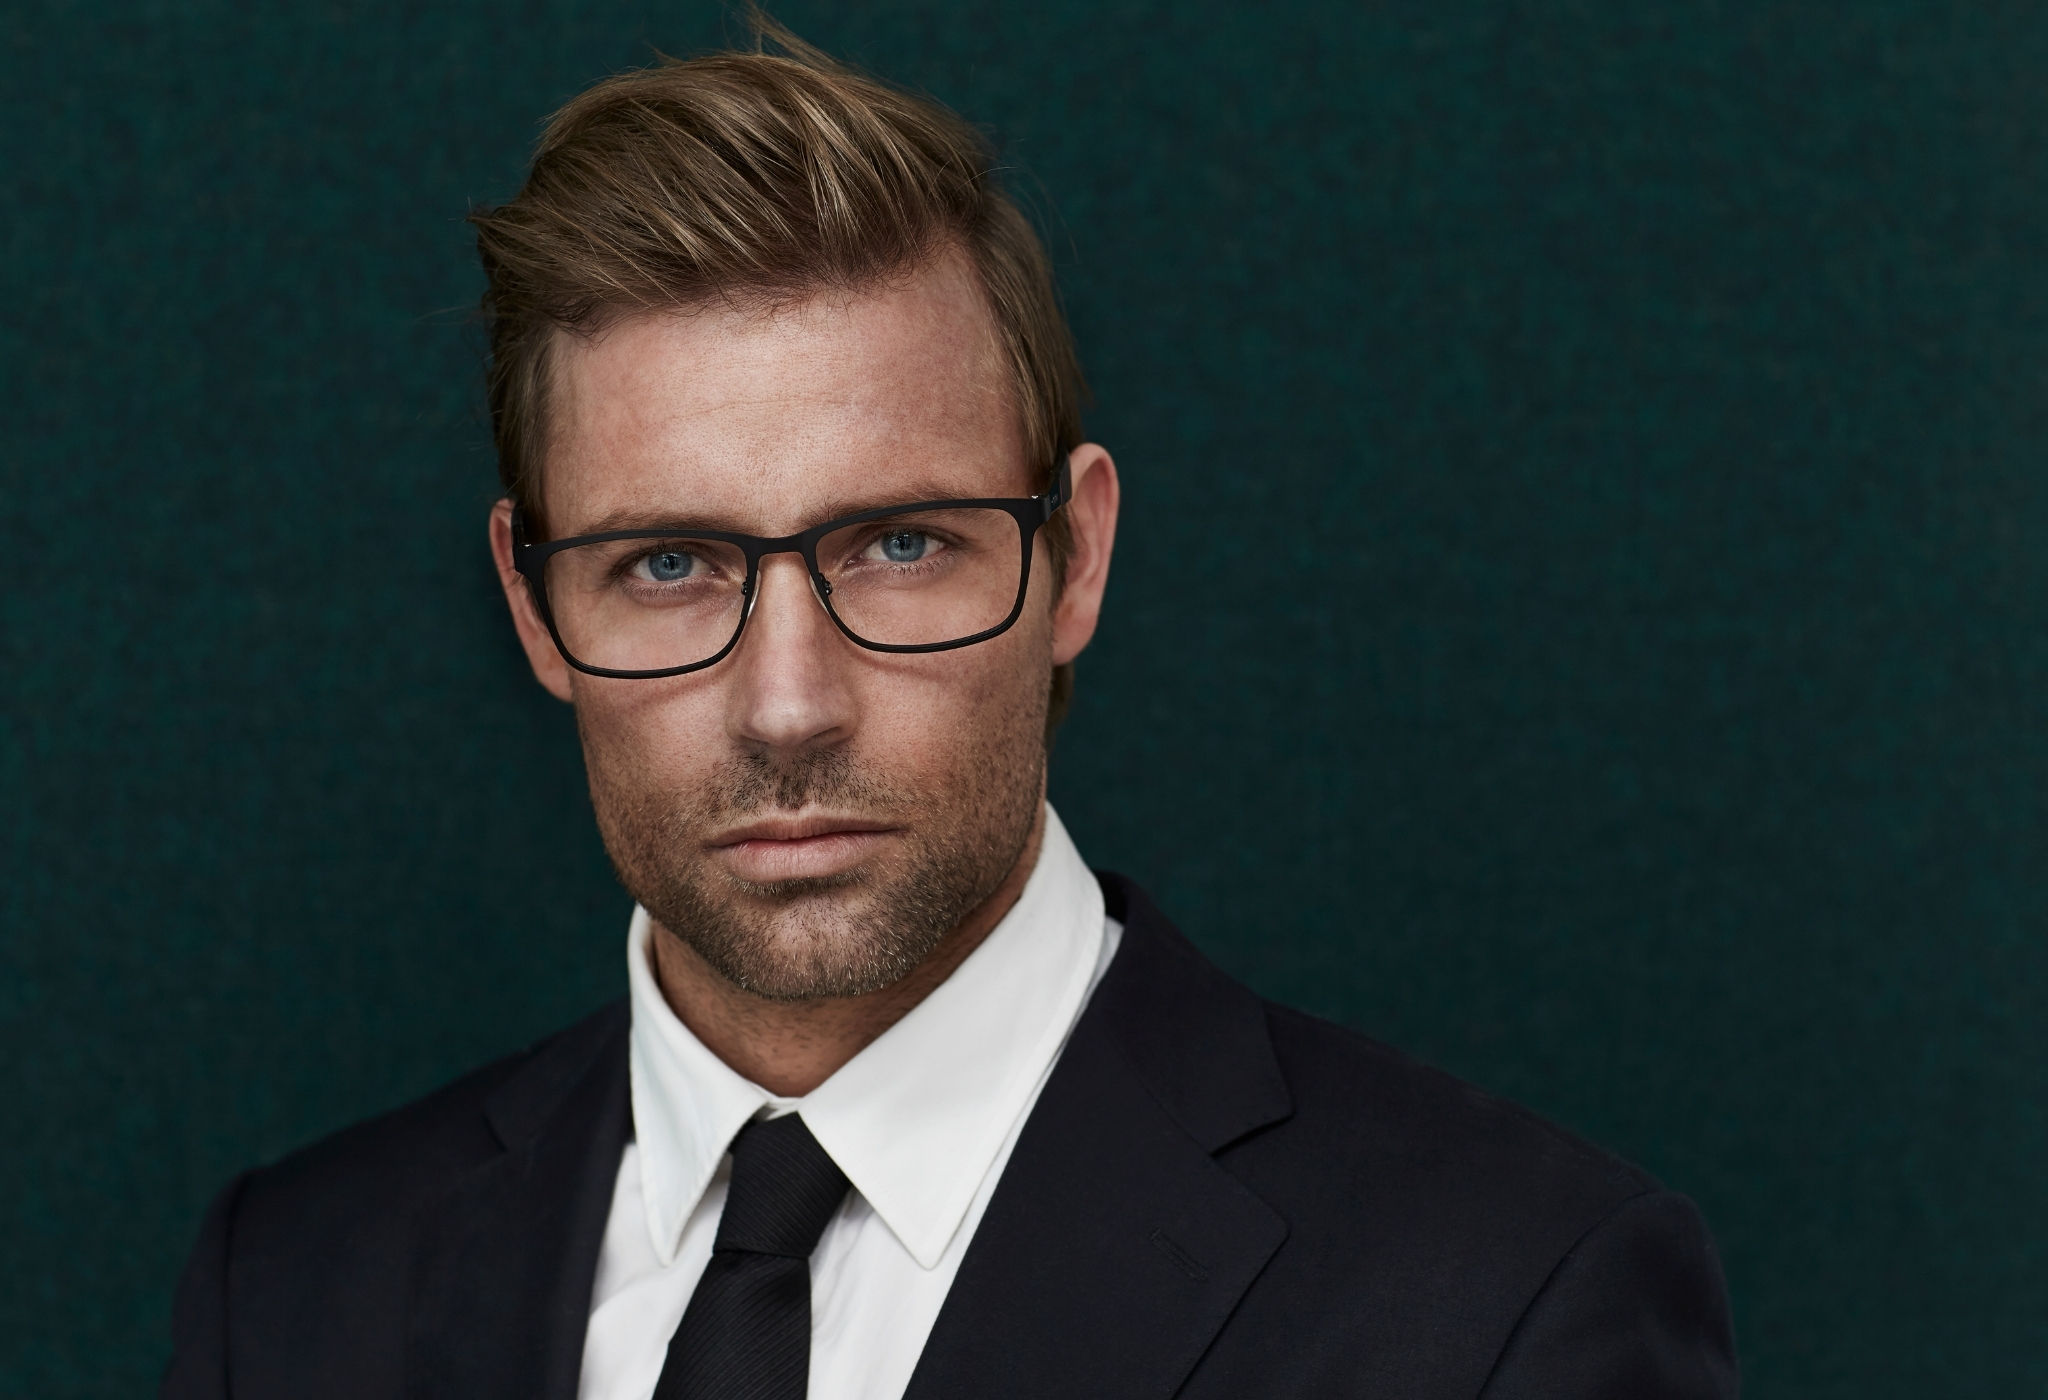 How To Look GREAT In Glasses | Find The Best Men's Eyeglasses